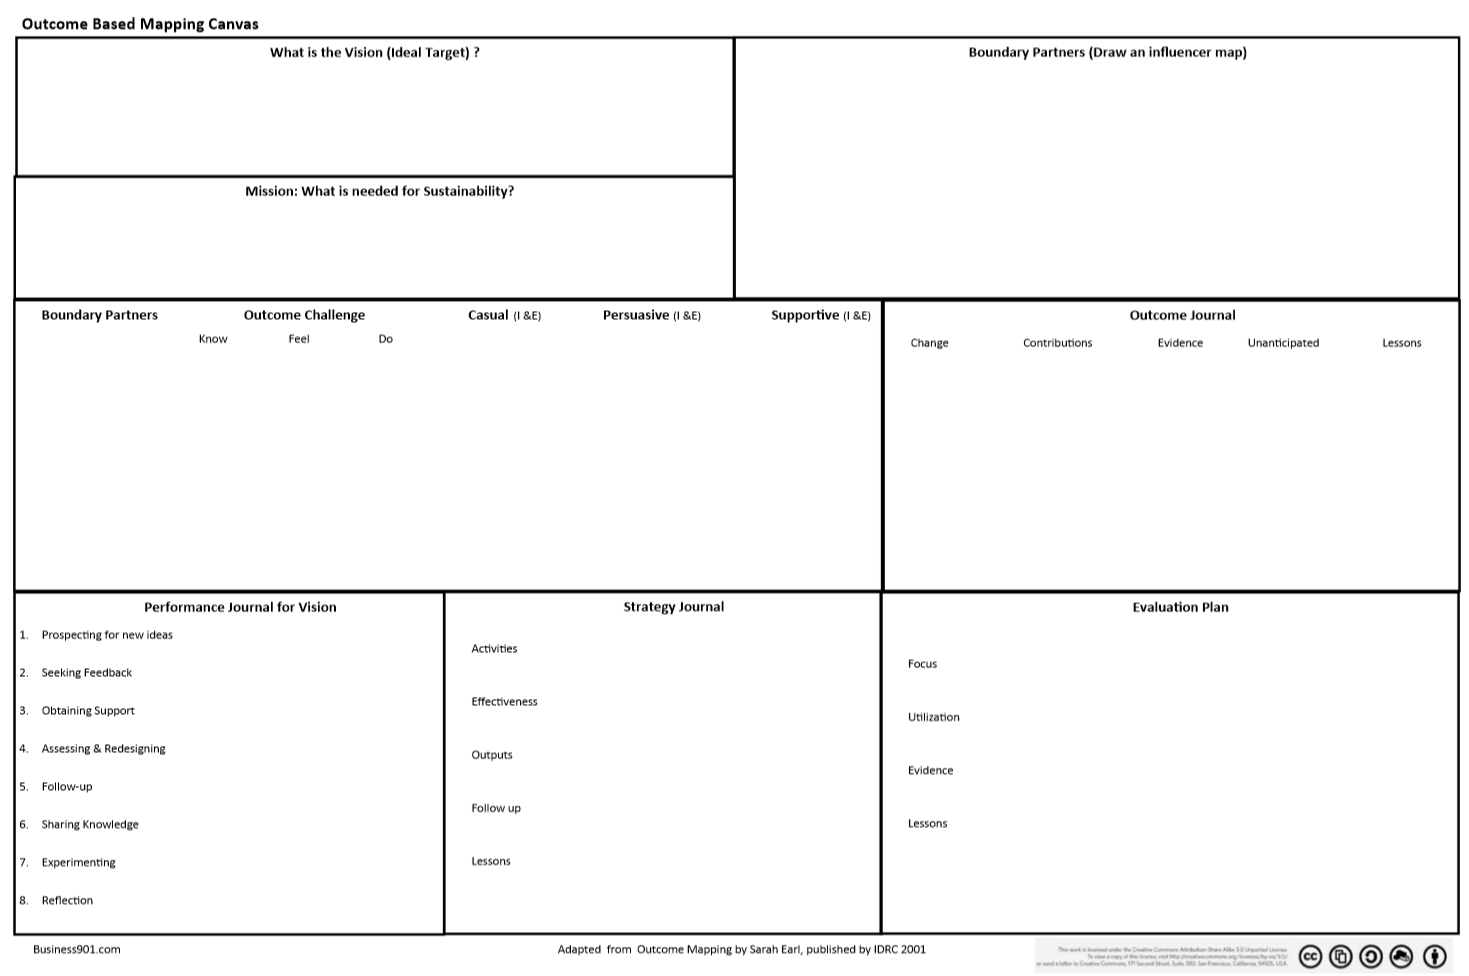 Outcome Based Mapping Canvas